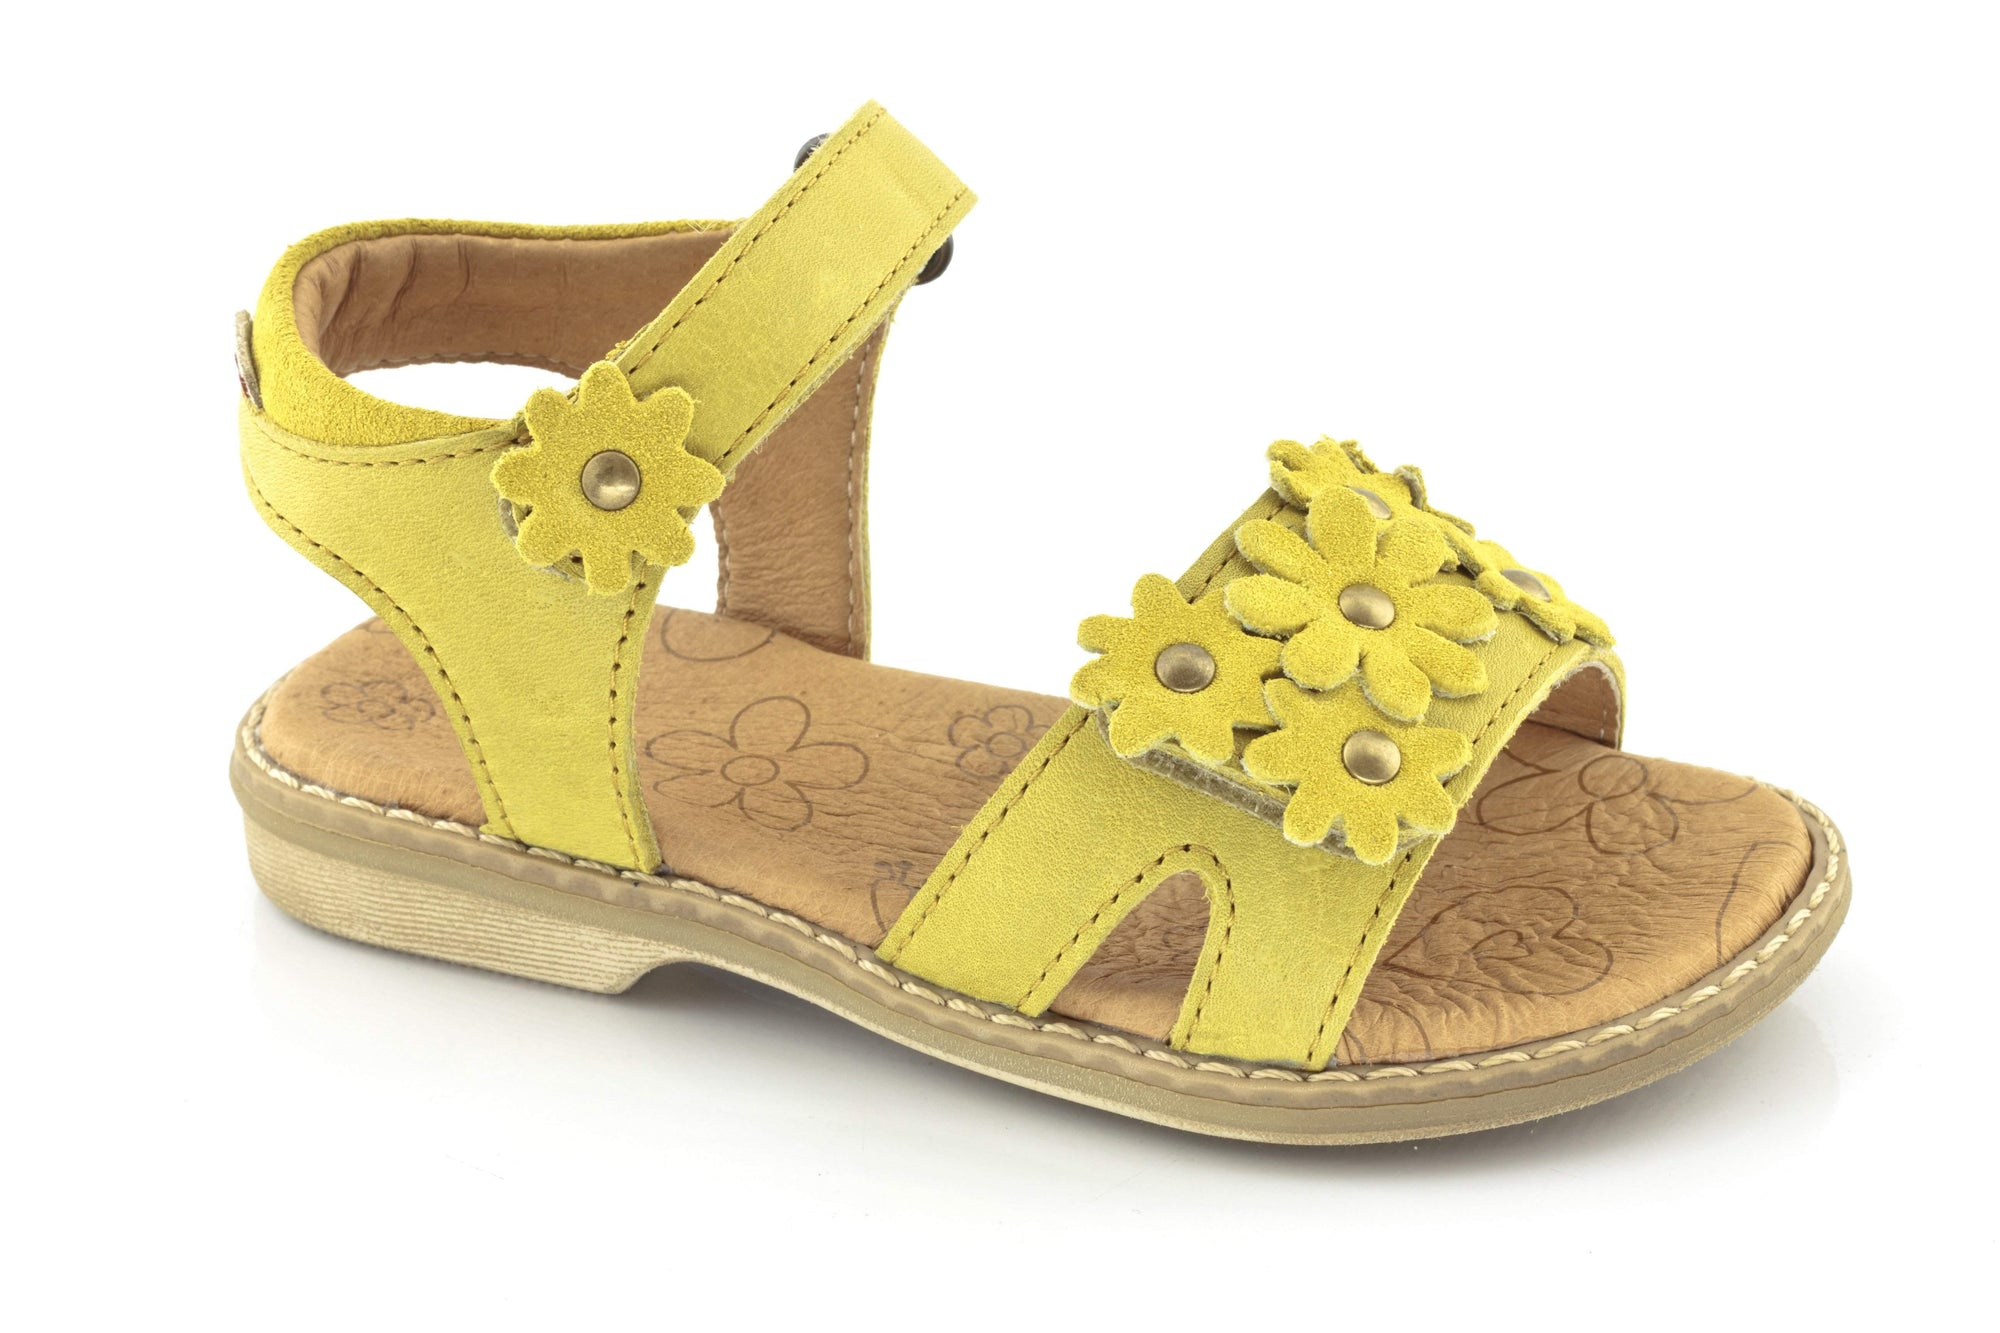 Froddo/G3150058-1/Yellow/Girls Leather Sandals - ShoeKid.ca